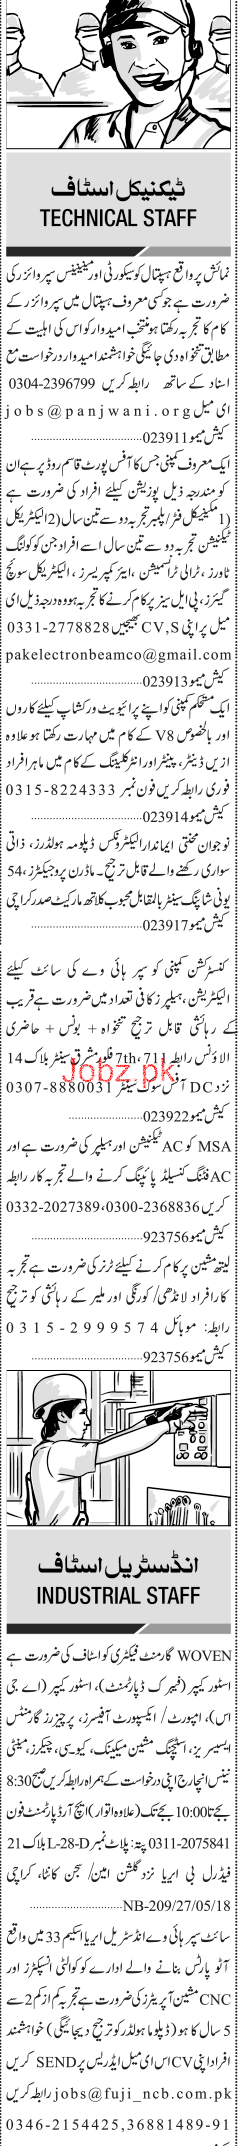 Security Guards, Maintenance Supervisors  Job Opportunity